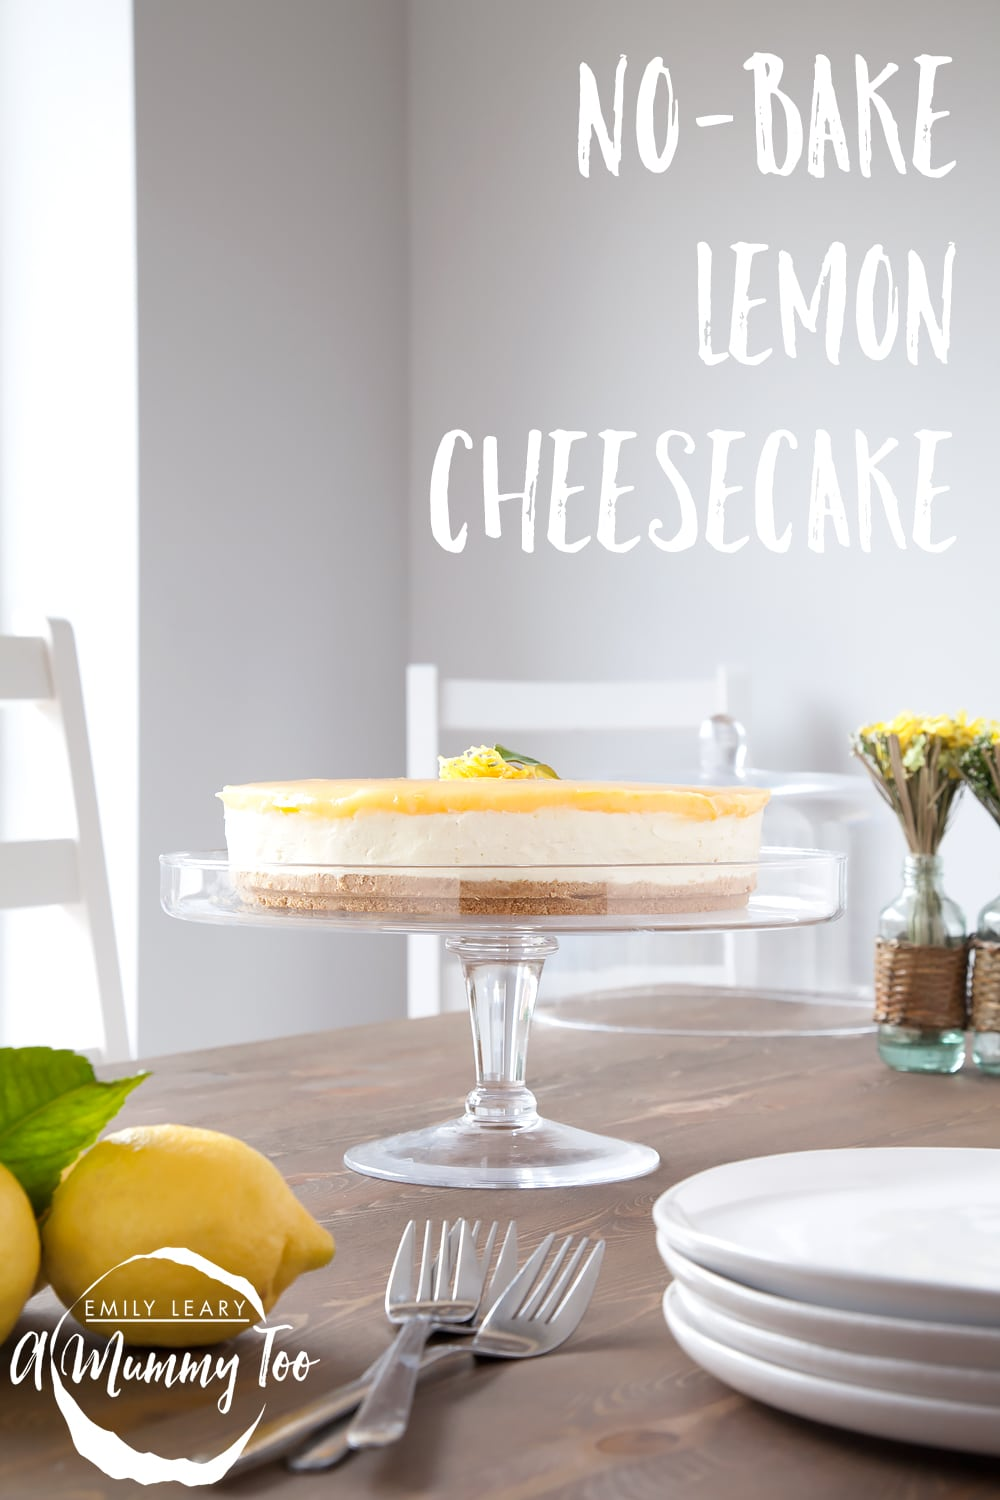 lemon-curd-cheesecake-1